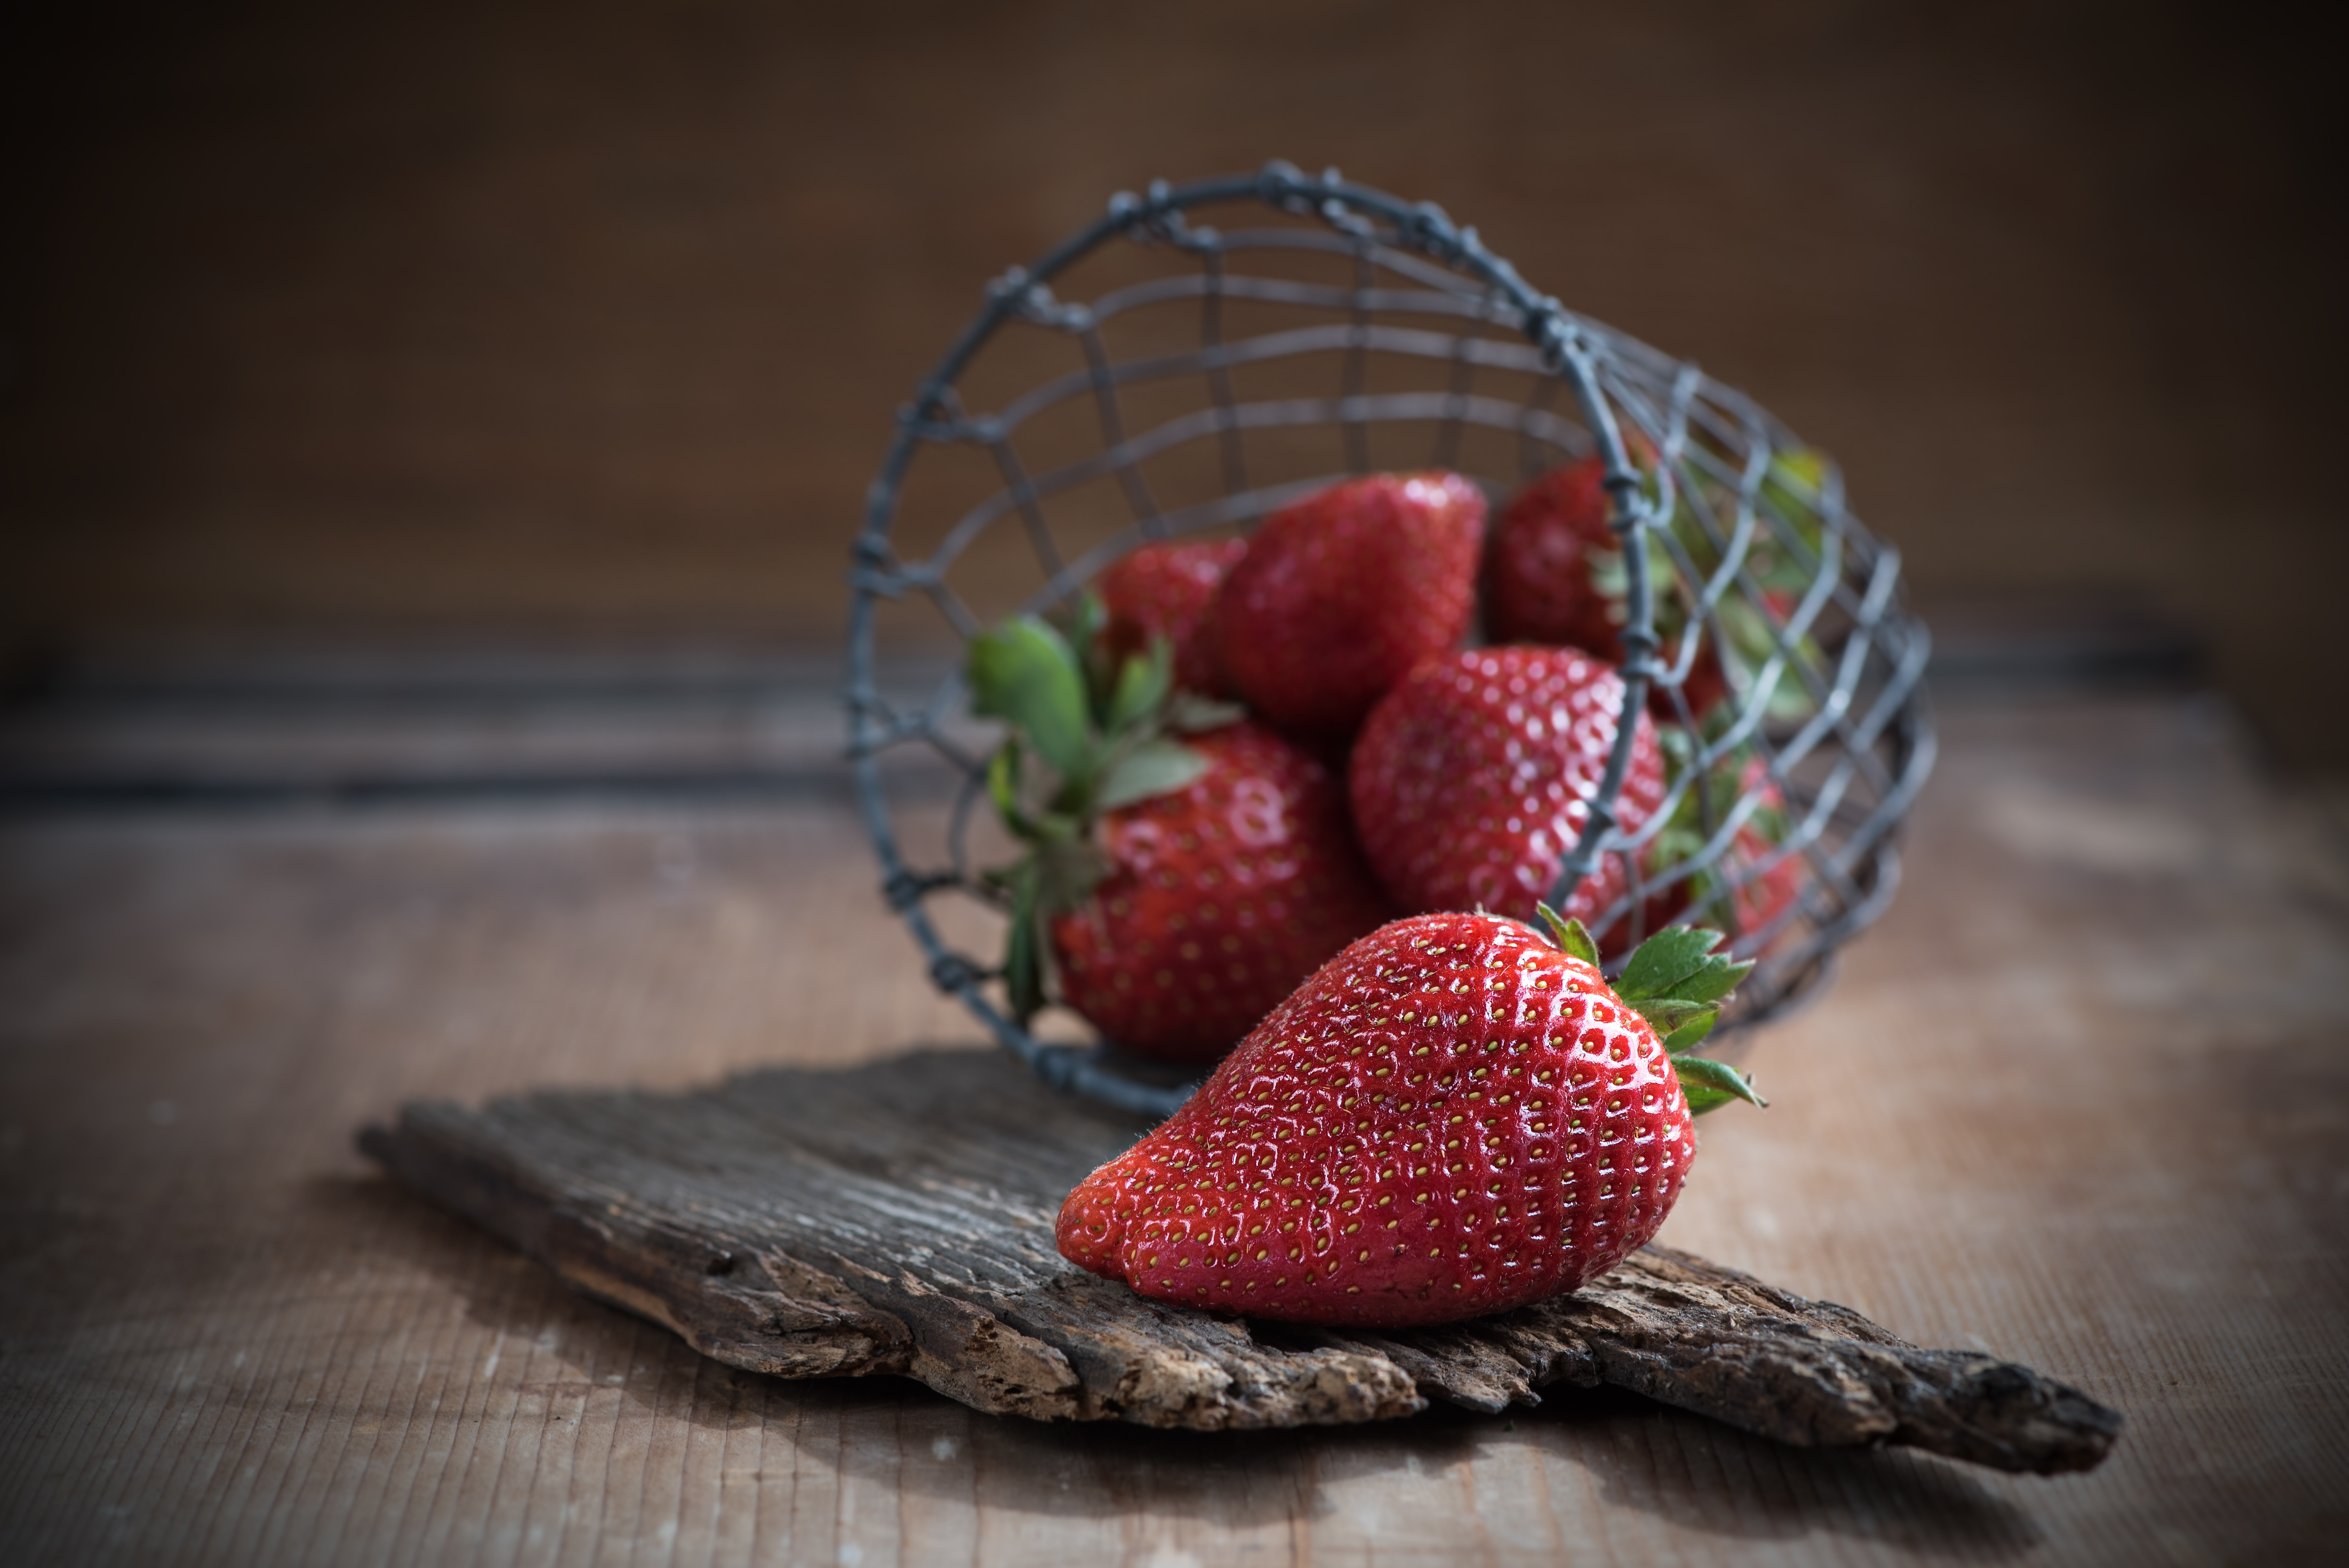 158138 download wallpaper Food, Strawberry, Basket, Ripe, Berries screensavers and pictures for free